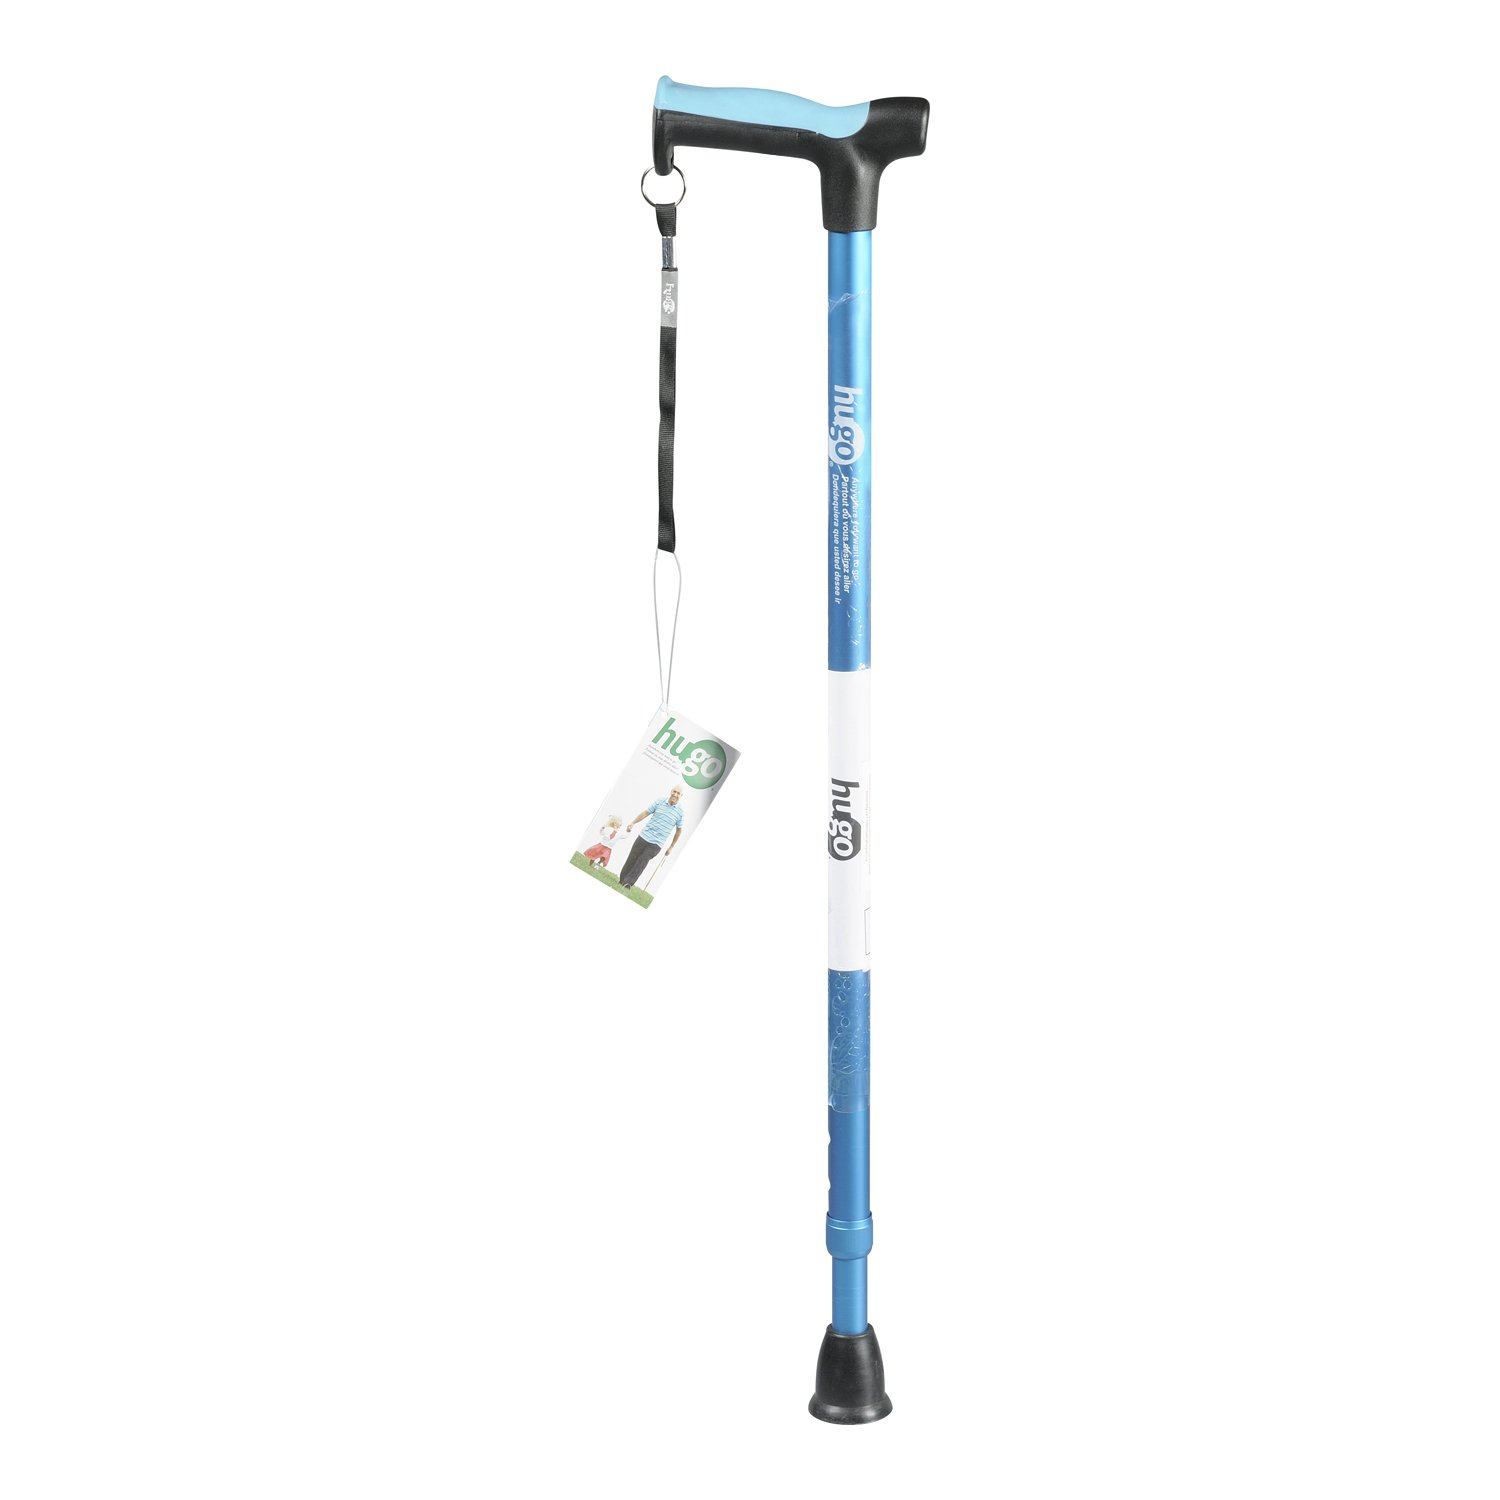 Hugo Mobility Adjustable Derby Handle Cane with Reflective Strap, Aquamarine by Hugo Mobility